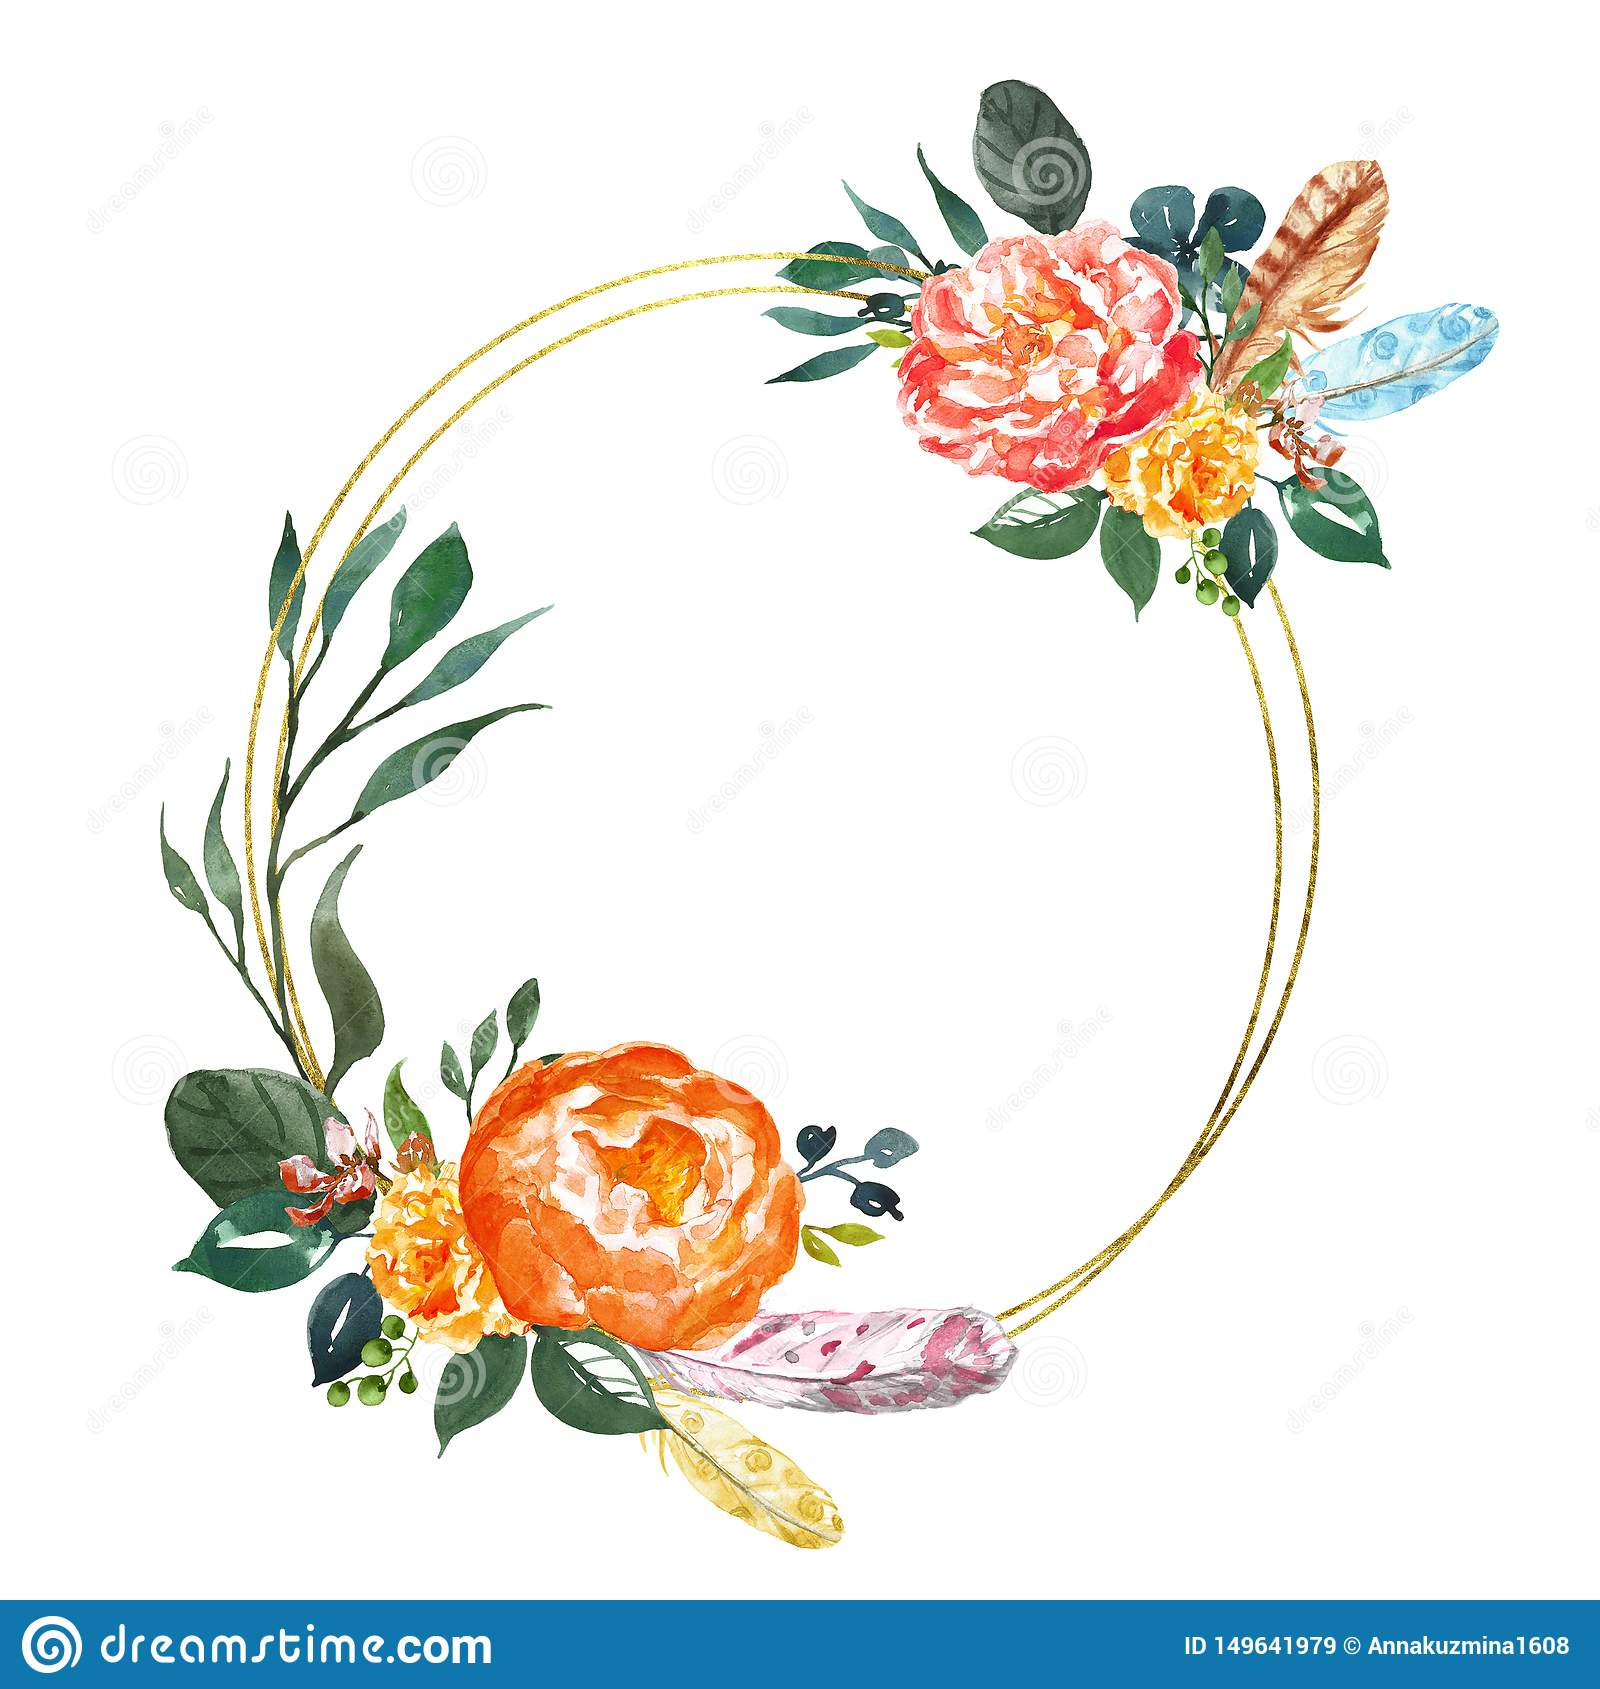 Floral Card Temlate In Bohemian Style Gold Hoop Wreath With Watercolor Pink And Orange Peony And Green Leaf Flowers Frame Stock Illustration Illustration Of Decorative Frame 149641979